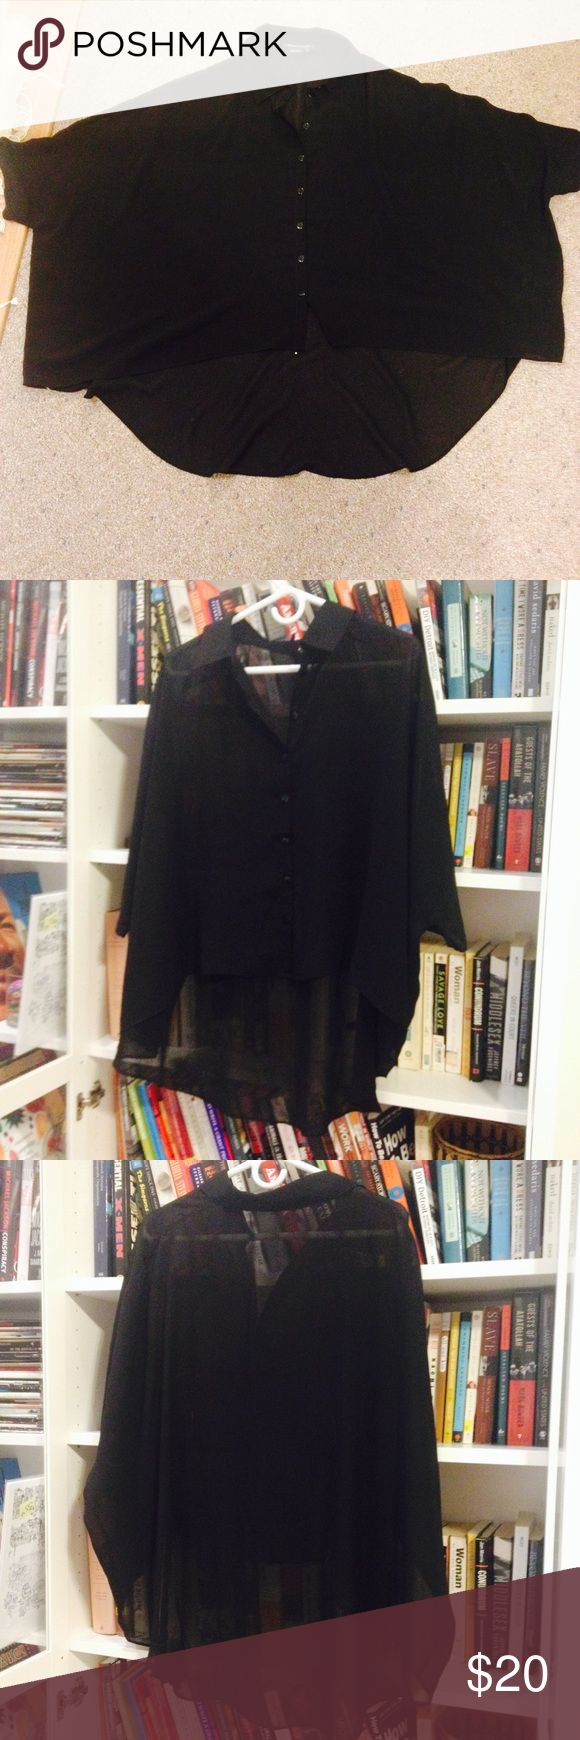 BCBG oversized top BCBG oversized top! It's sheer, has a collar and button down, and is high low (lower in back). Super oversized. Great condition. Remember, you can save 20% on this shirt if you bundle! BCBGMaxAzria Tops Blouses